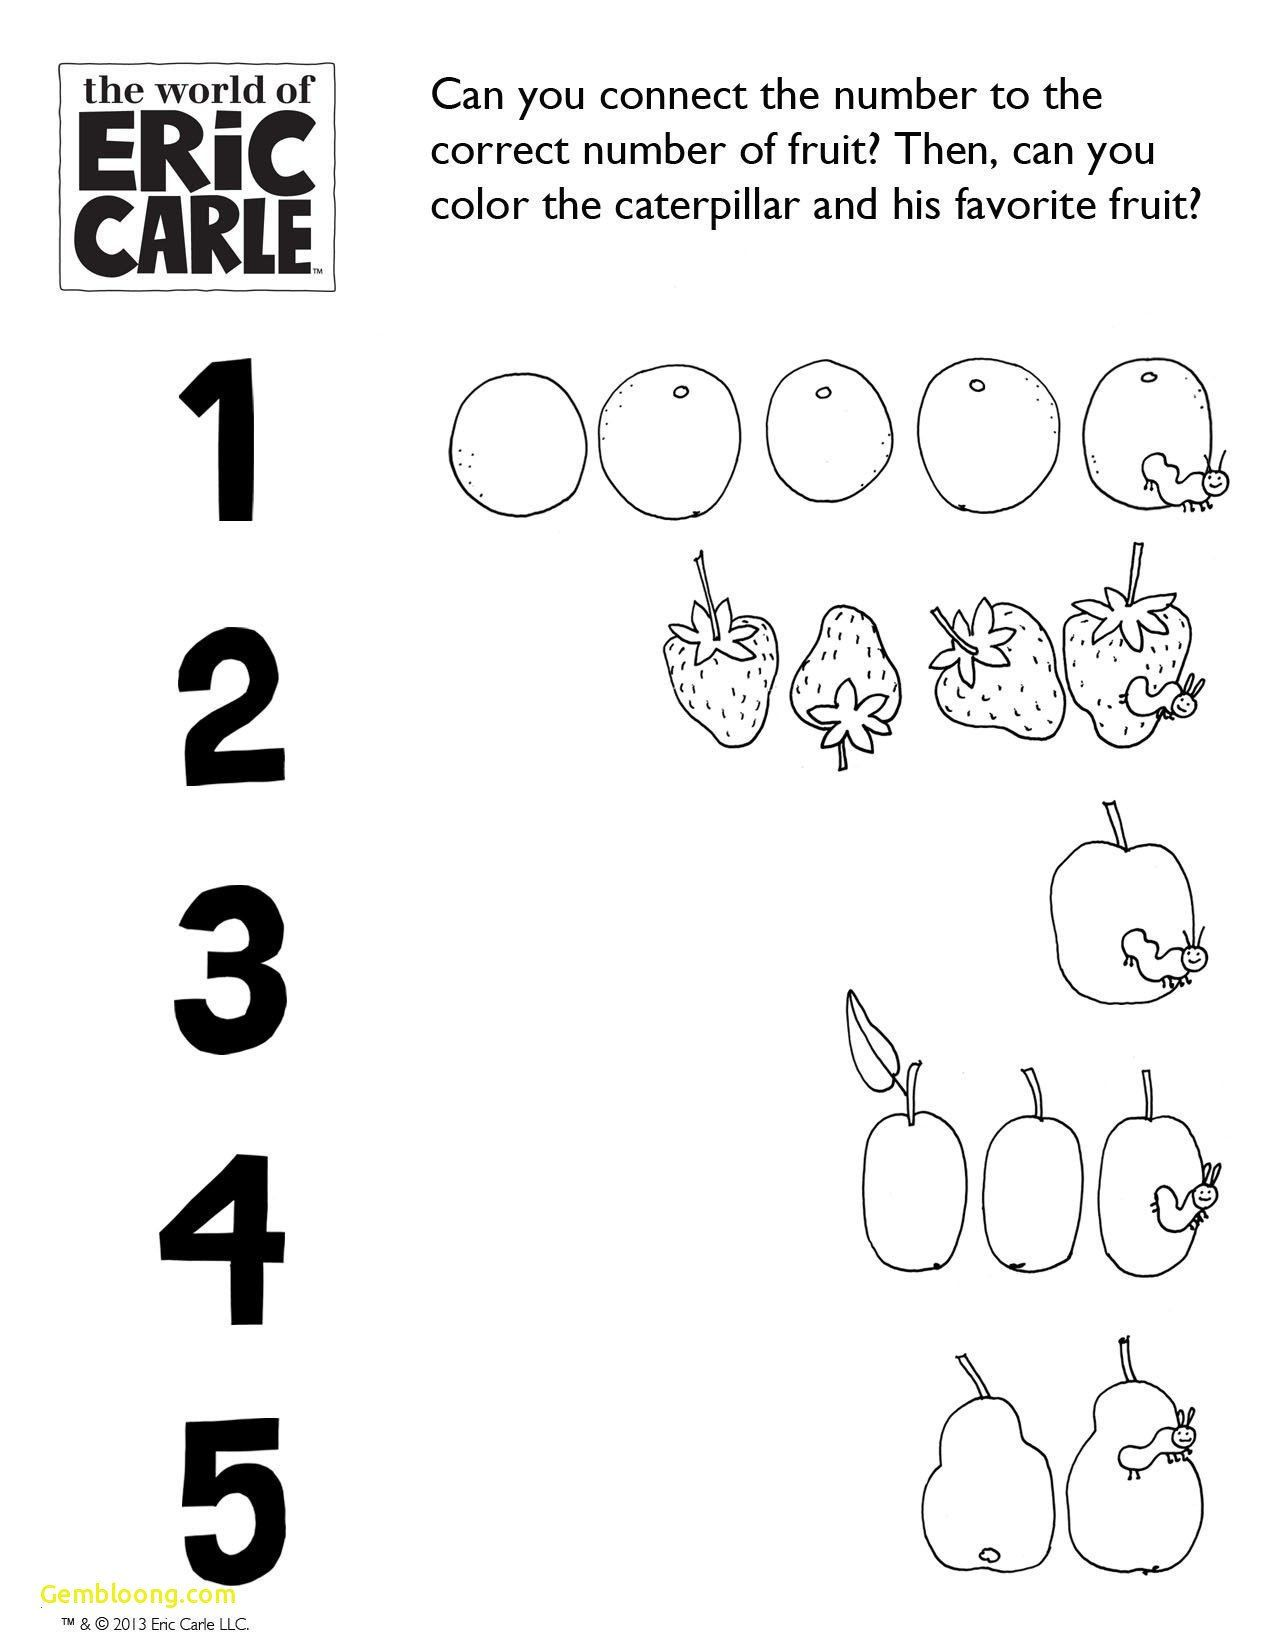 Printable Caterpillar Coloring Pages The Very Hungry Caterpillar Coloring Pages Printables Very Hungry Caterpillar Mermaid Coloring Book Fall Coloring Pages